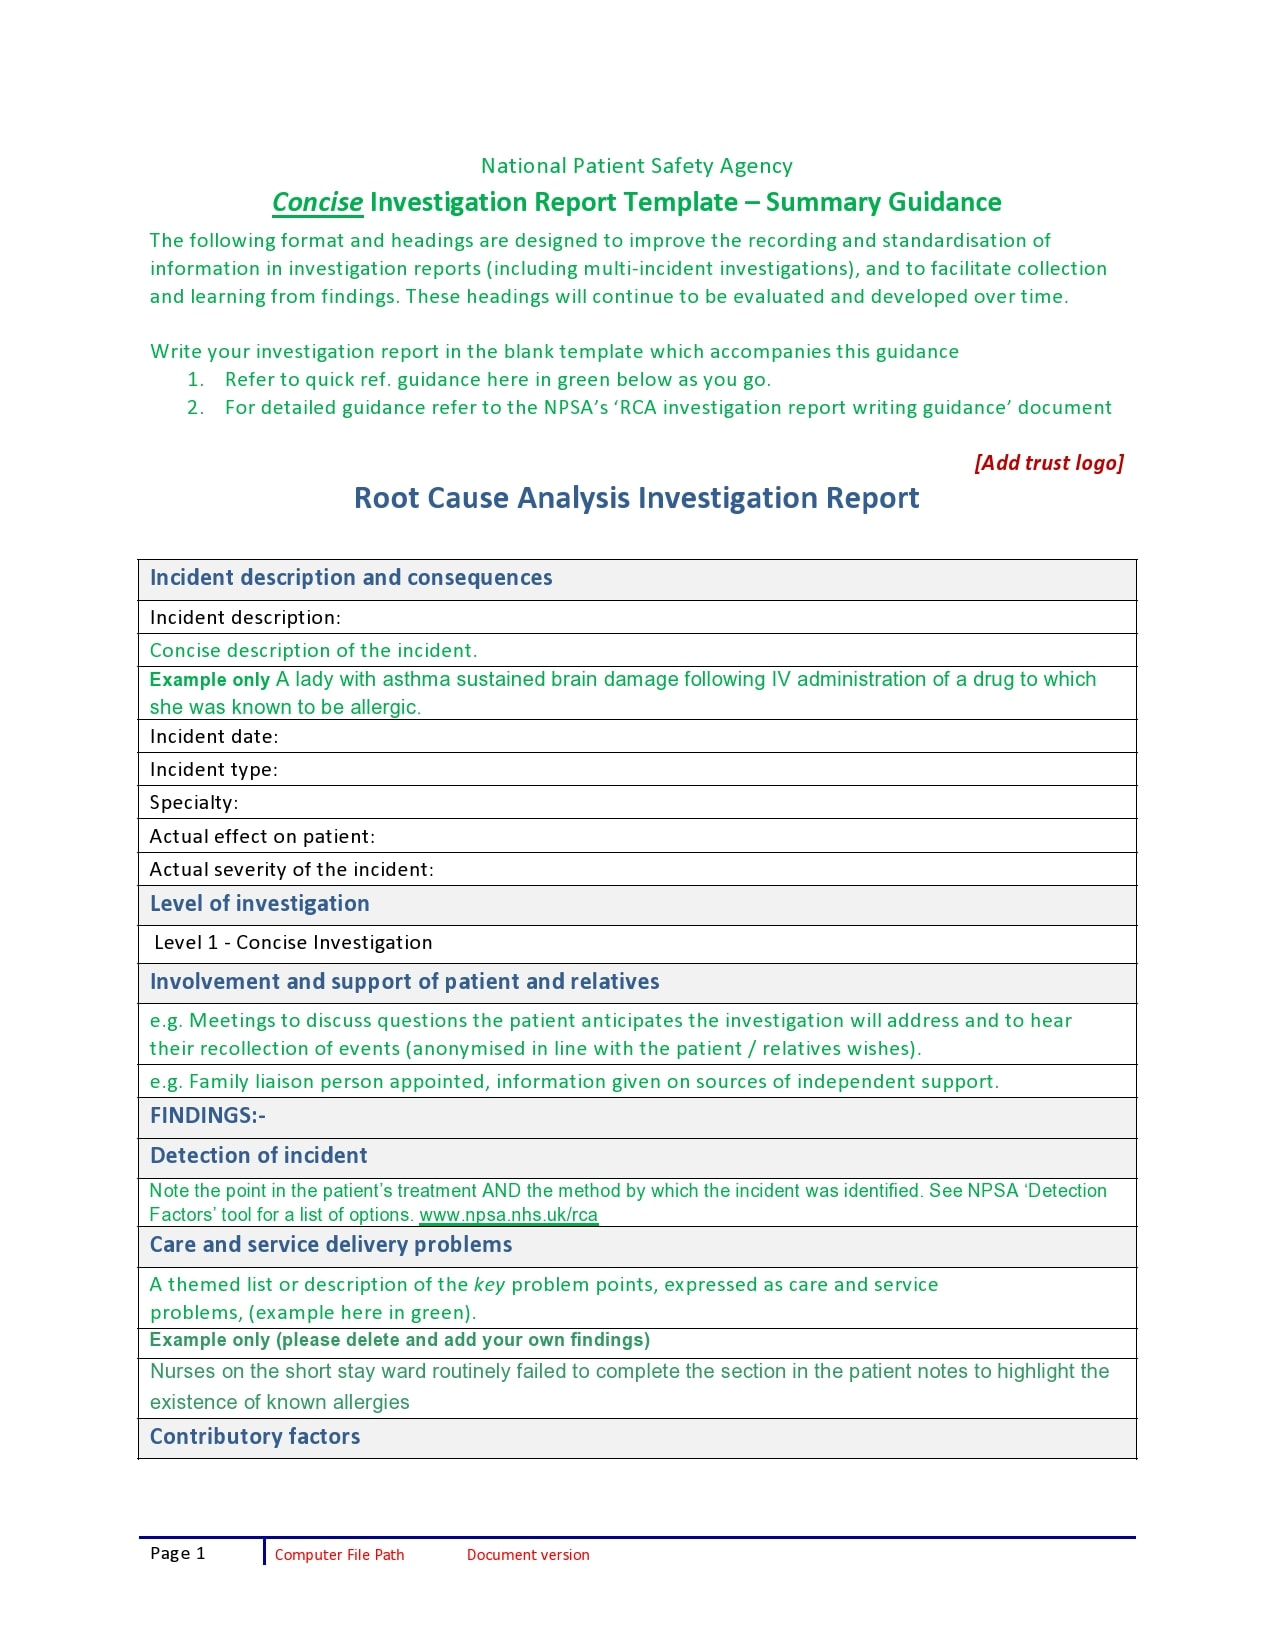 root cause analysis template 20